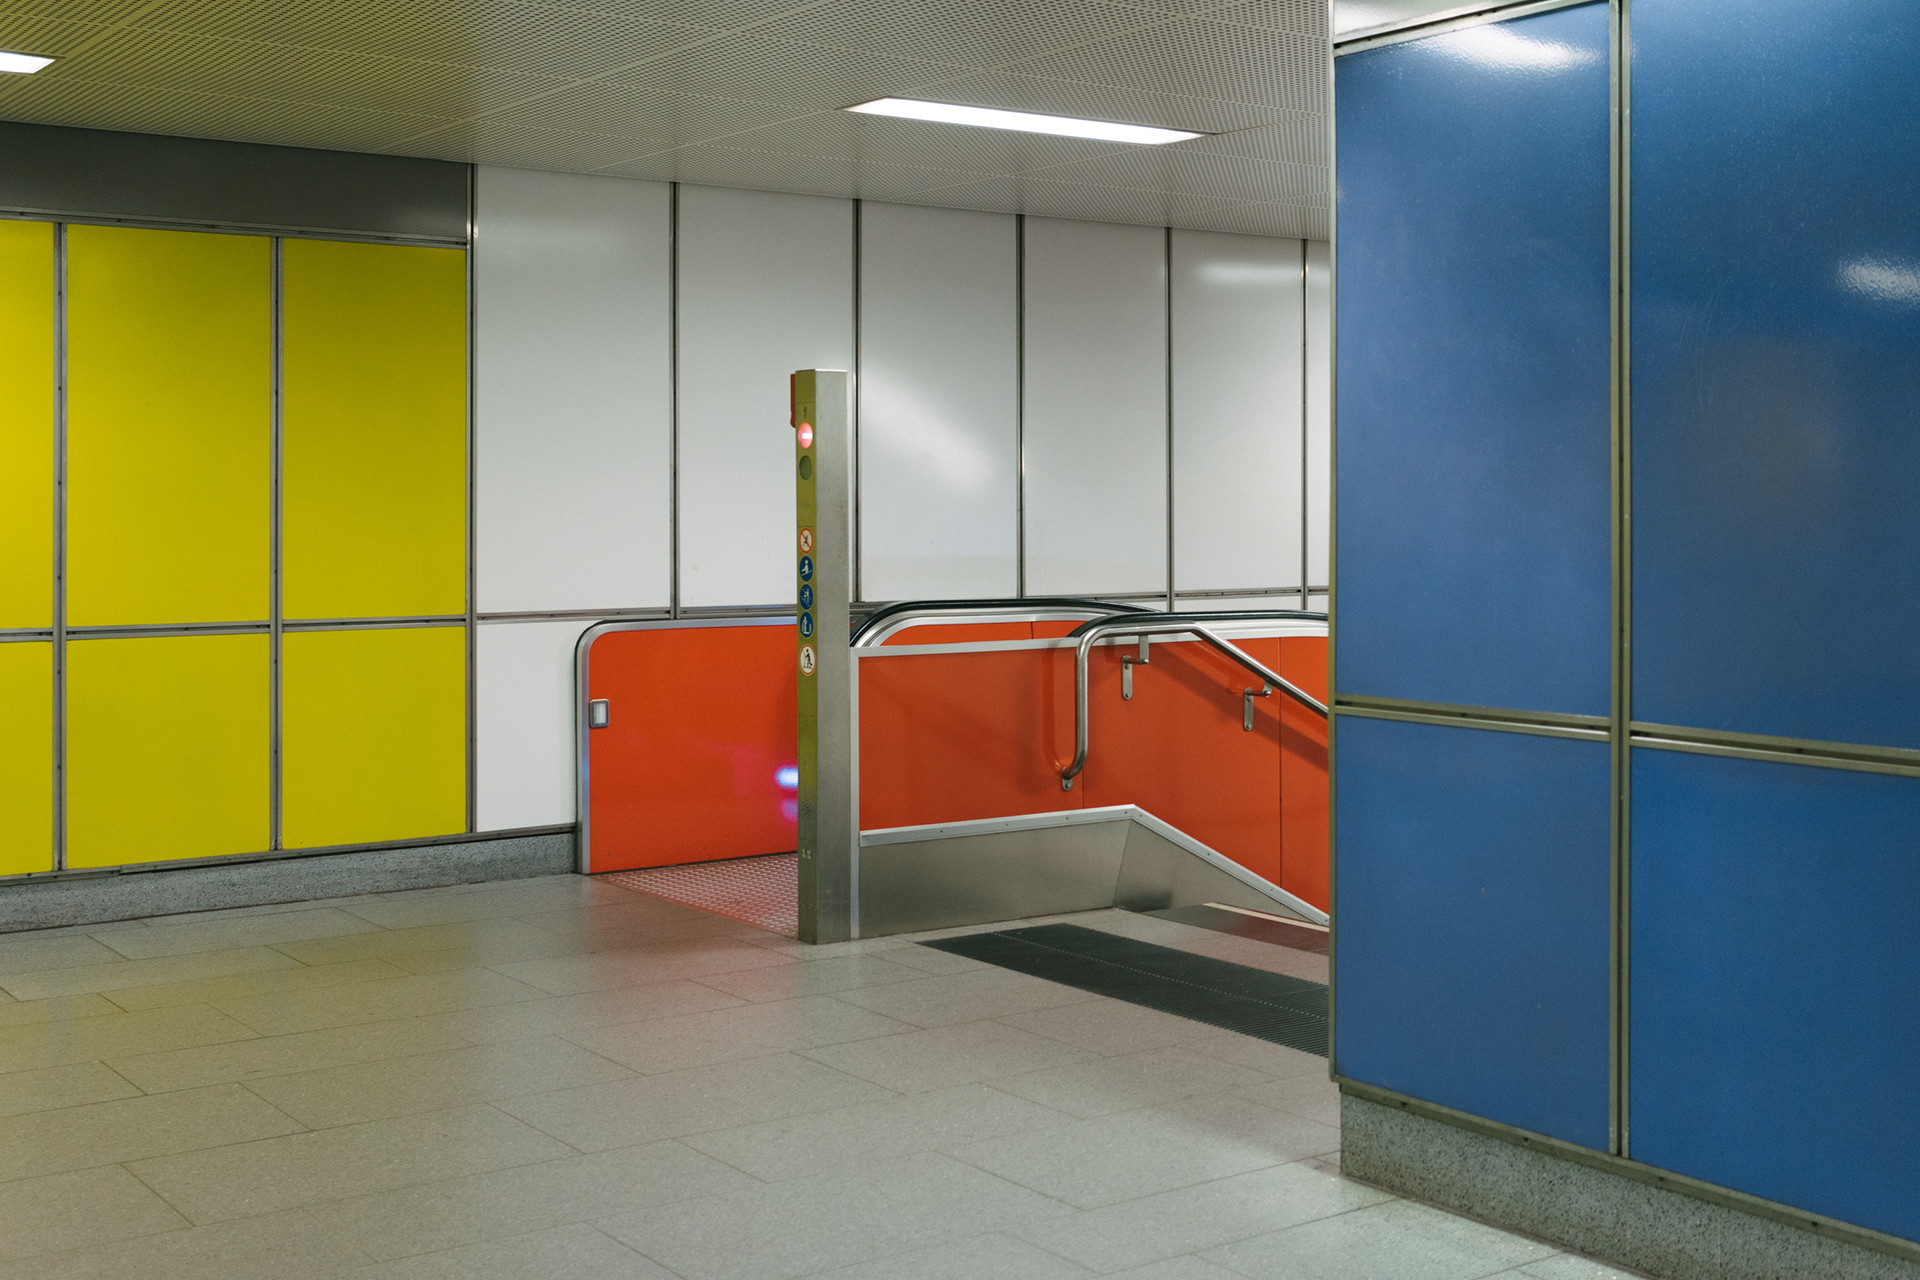 Minimalist Pictures of a Metro Station in Hamburg (11 pics)